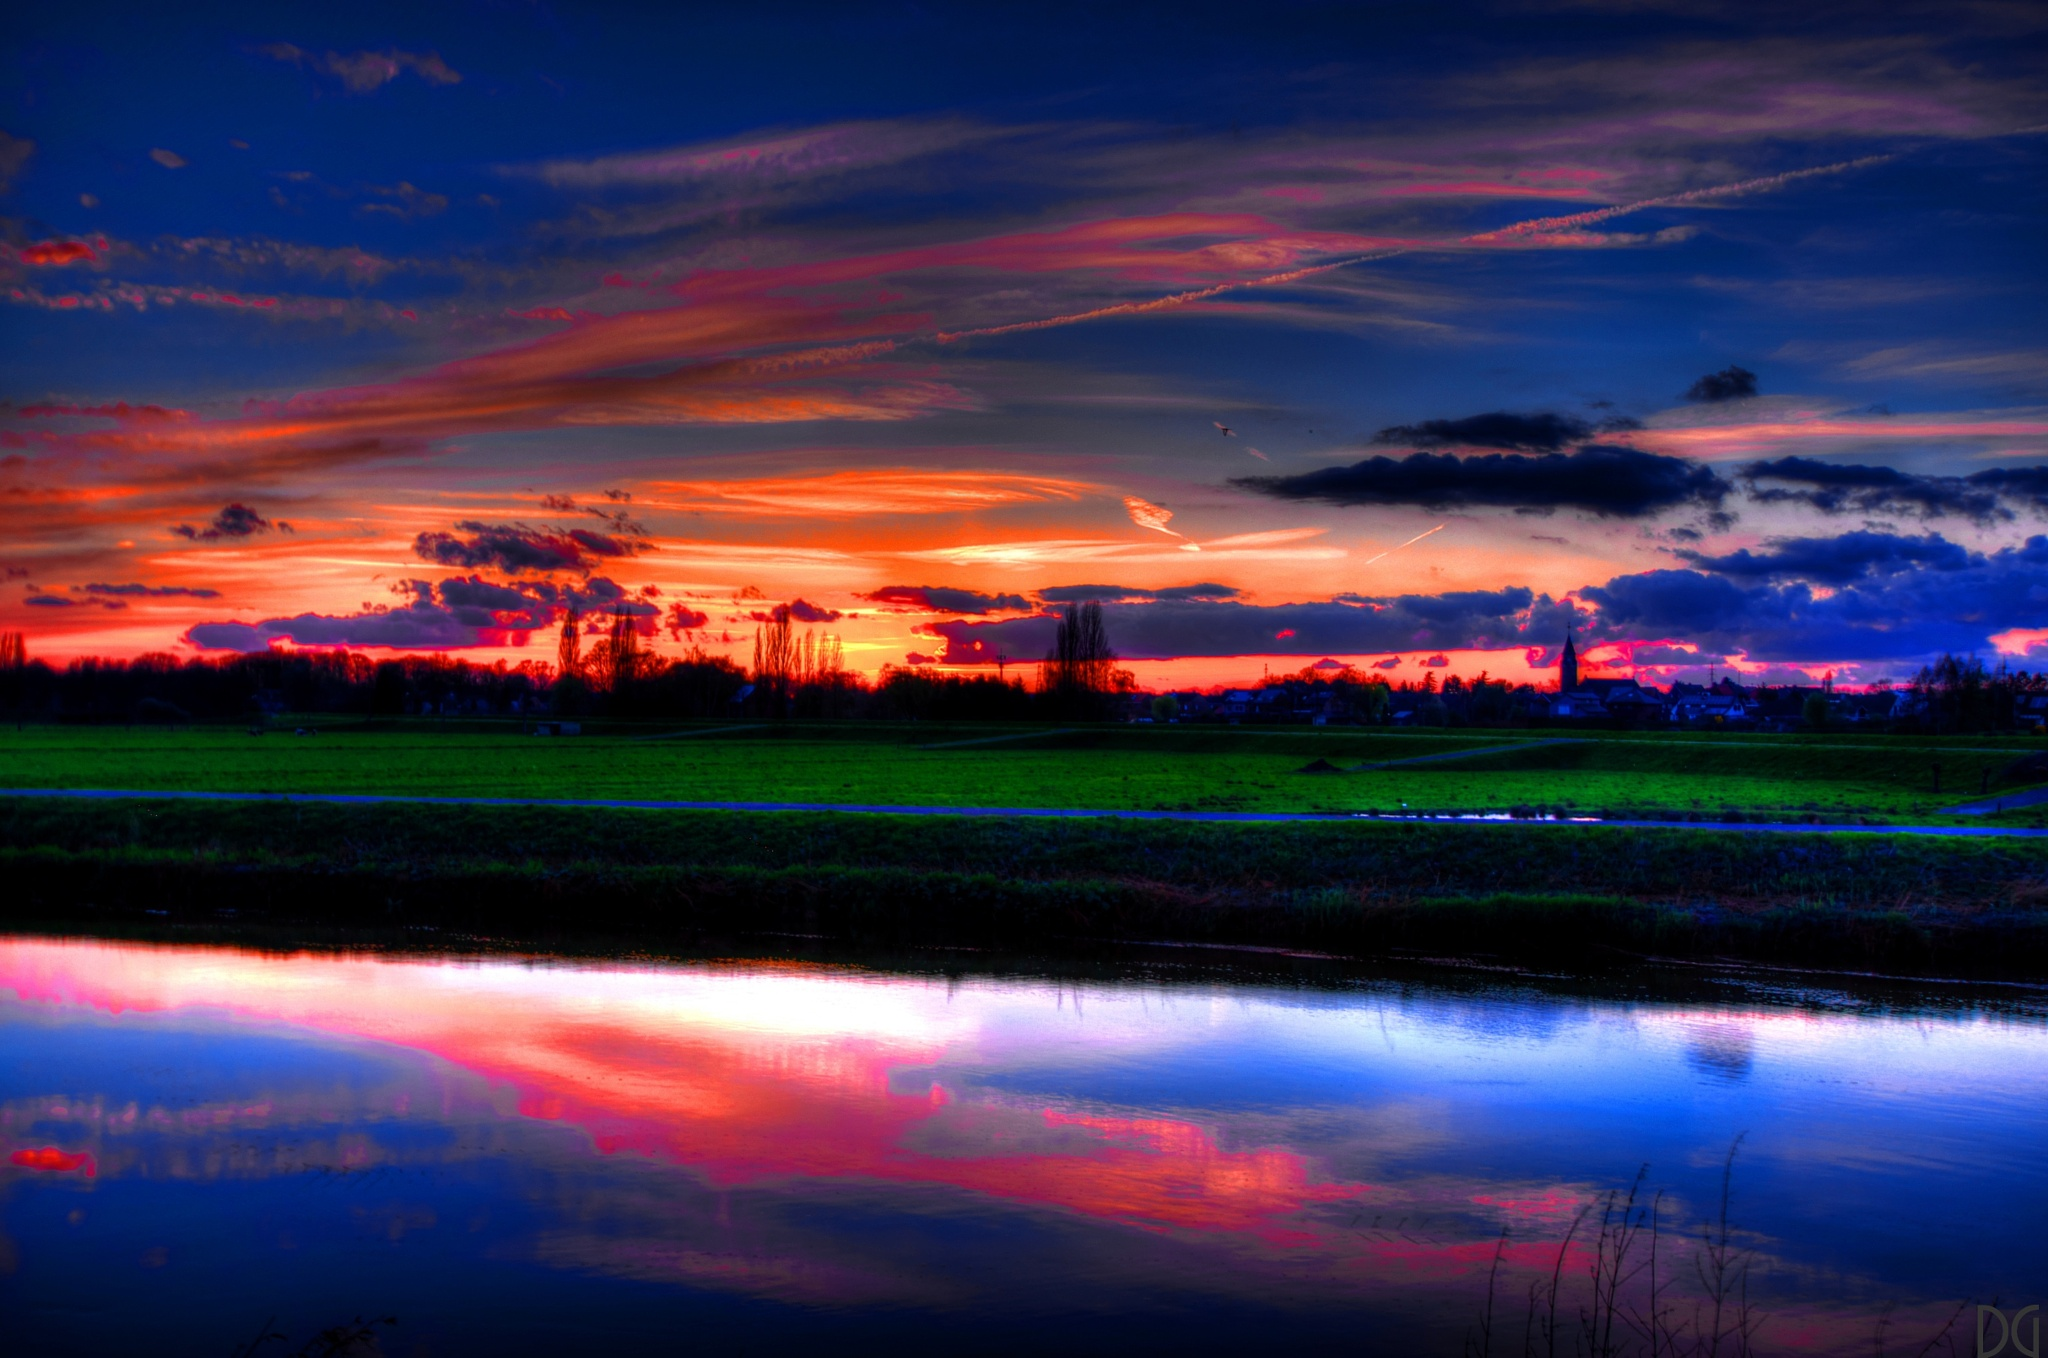 Sunset II. by Dirk Gonthier